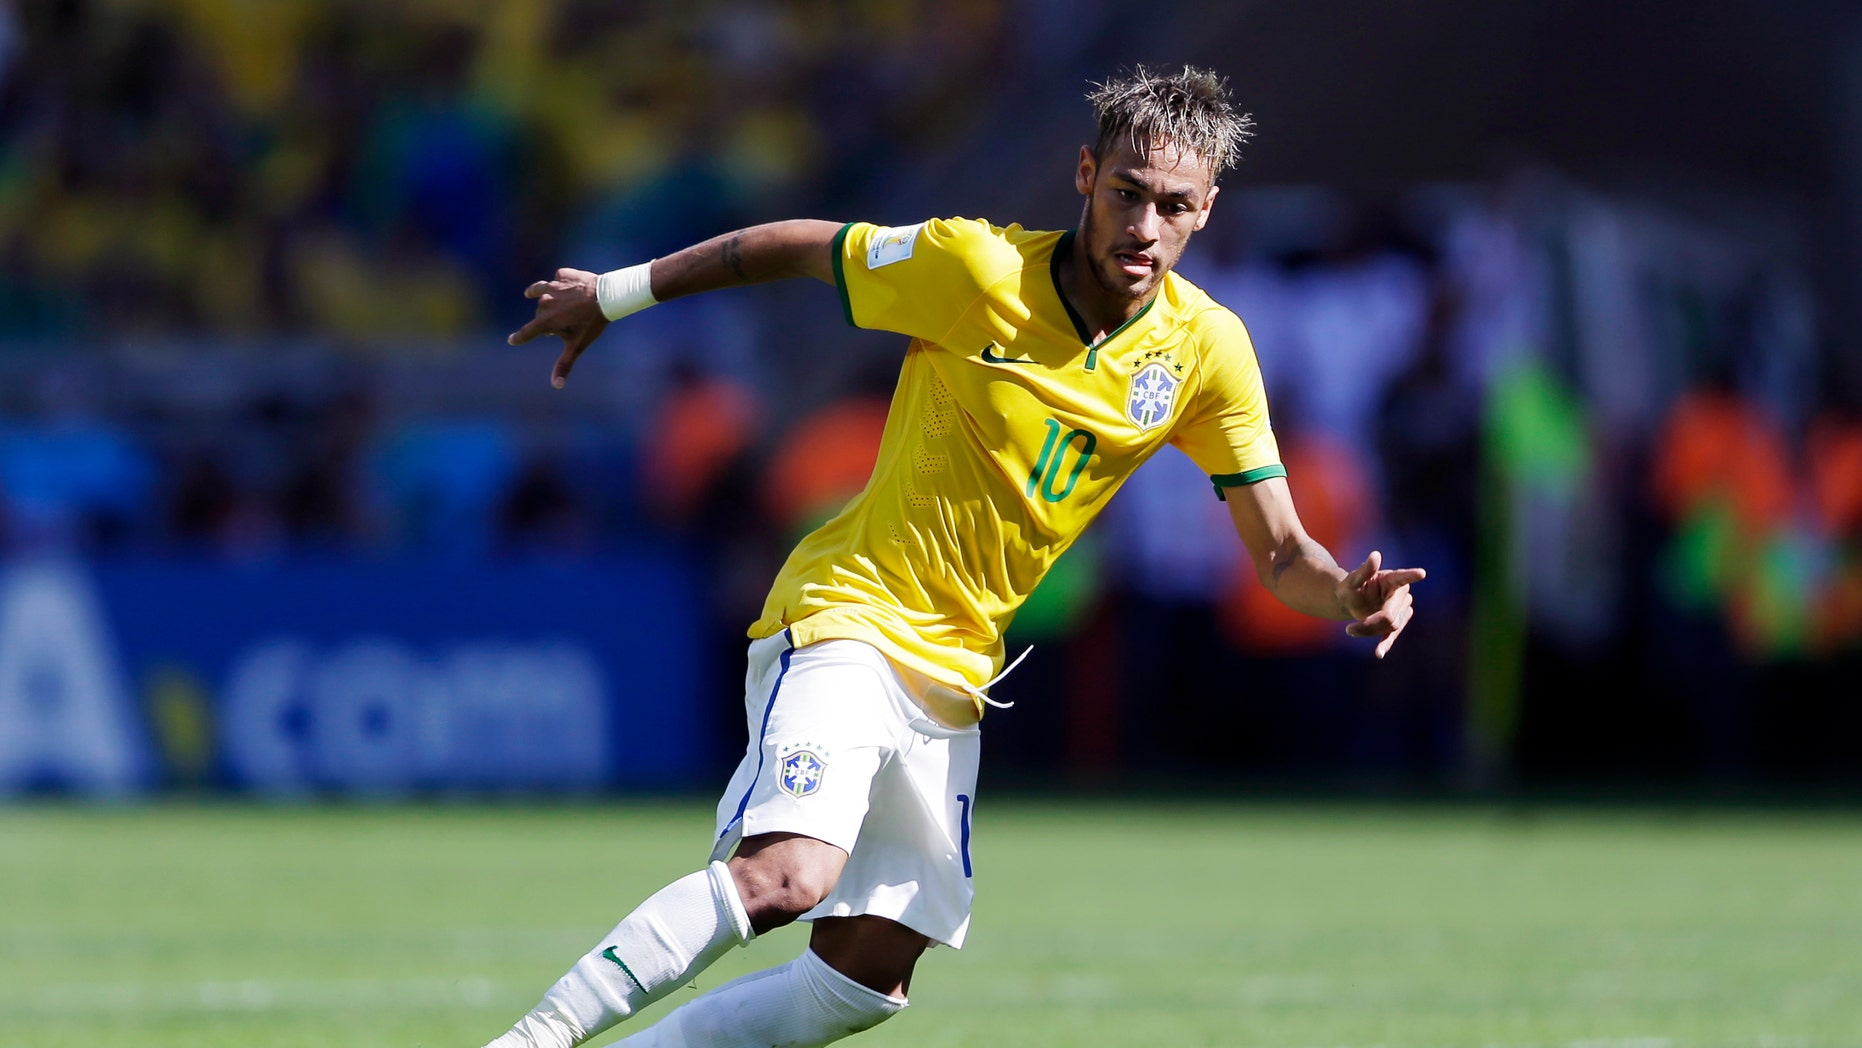 Brazil's Neymar runs with the ball  during the World Cup round of 16 soccer match between Brazil and Chile at the Mineirao Stadium in Belo Horizonte, Brazil, Saturday, June 28, 2014.(AP Photo/Andre Penner)